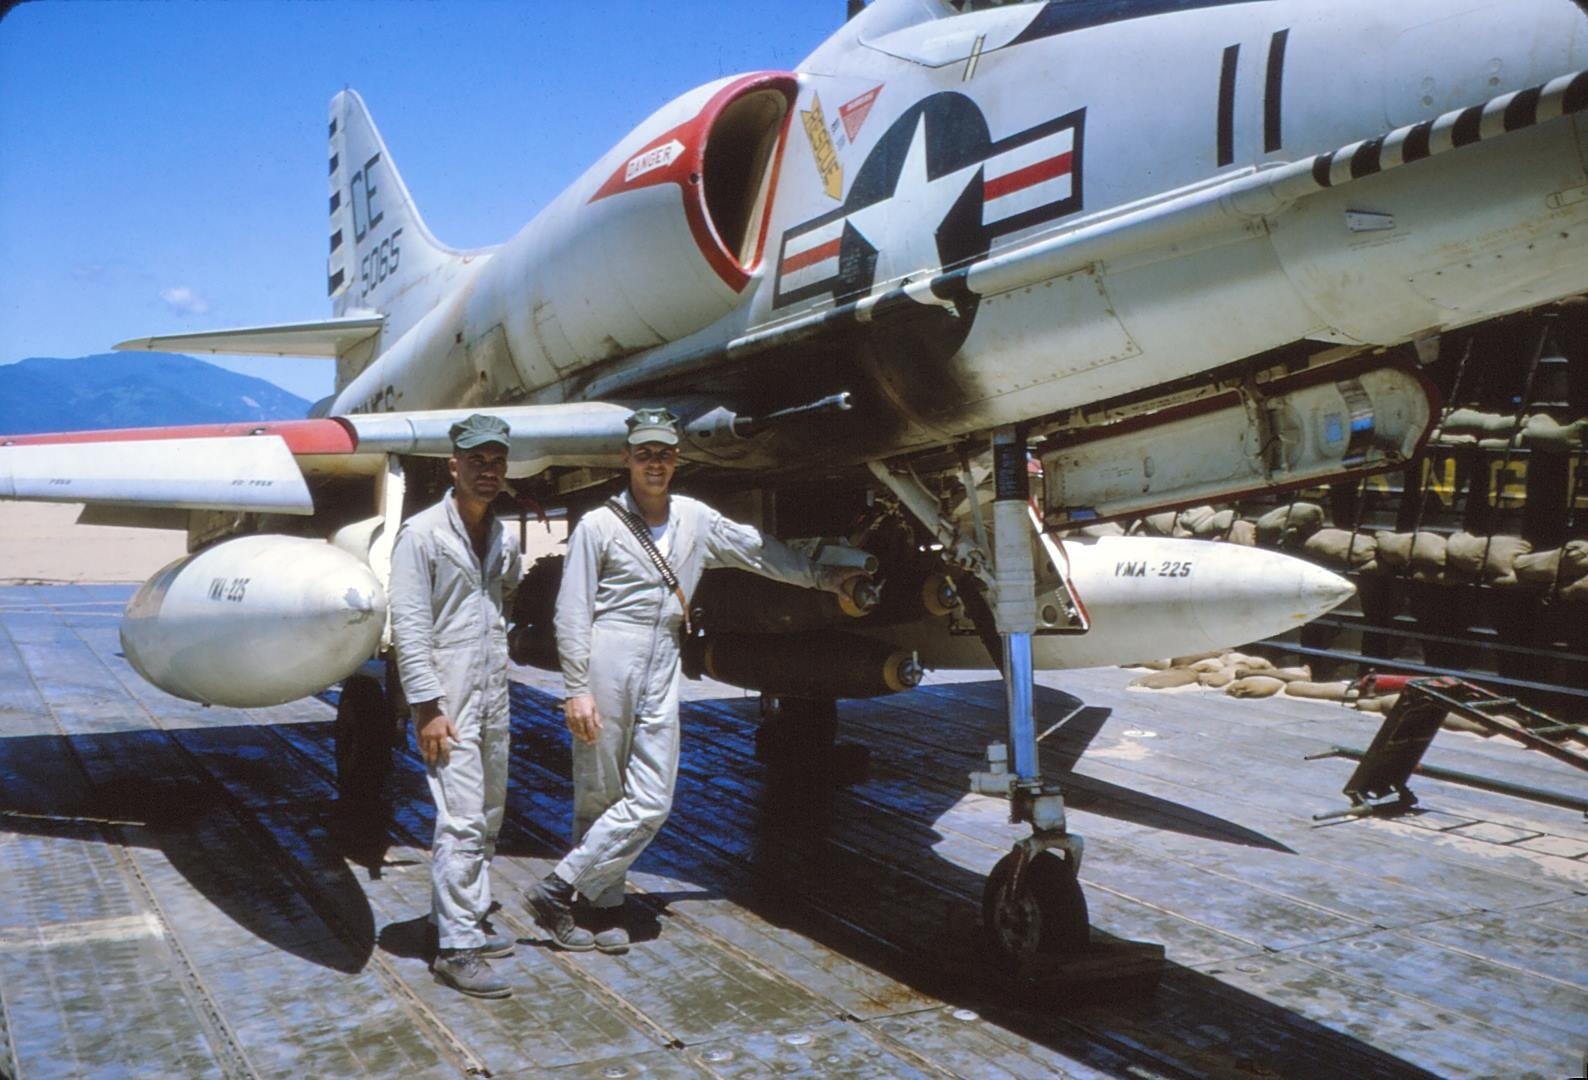 Two pilots from Marine Attack Squadron (VMA) 225 stand in front of a Douglas A4 Skyhawk at Chu Lai Air Base, Vietnam in 1965 (Courtesy photo / Rich Lee)